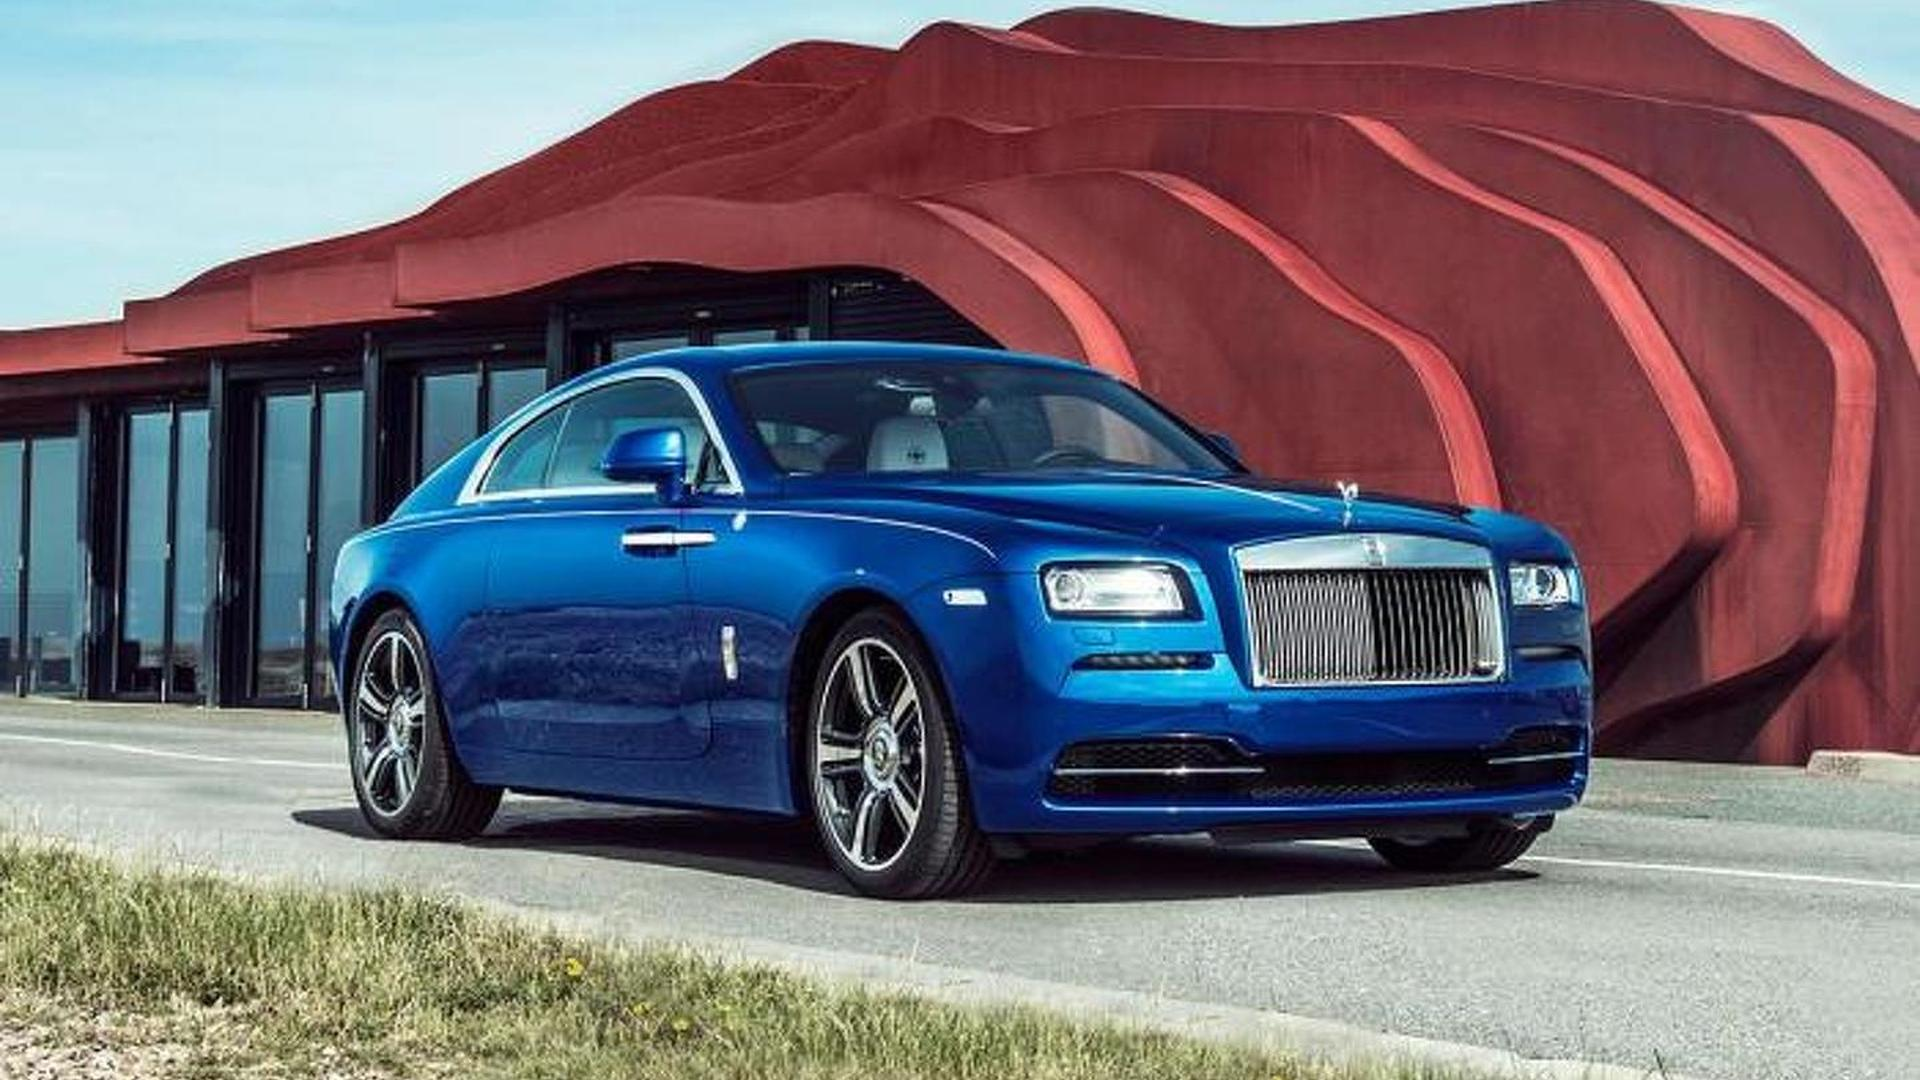 Rolls Royce Drops New Images And Details Of Bespoke Wraith Porto Cervo